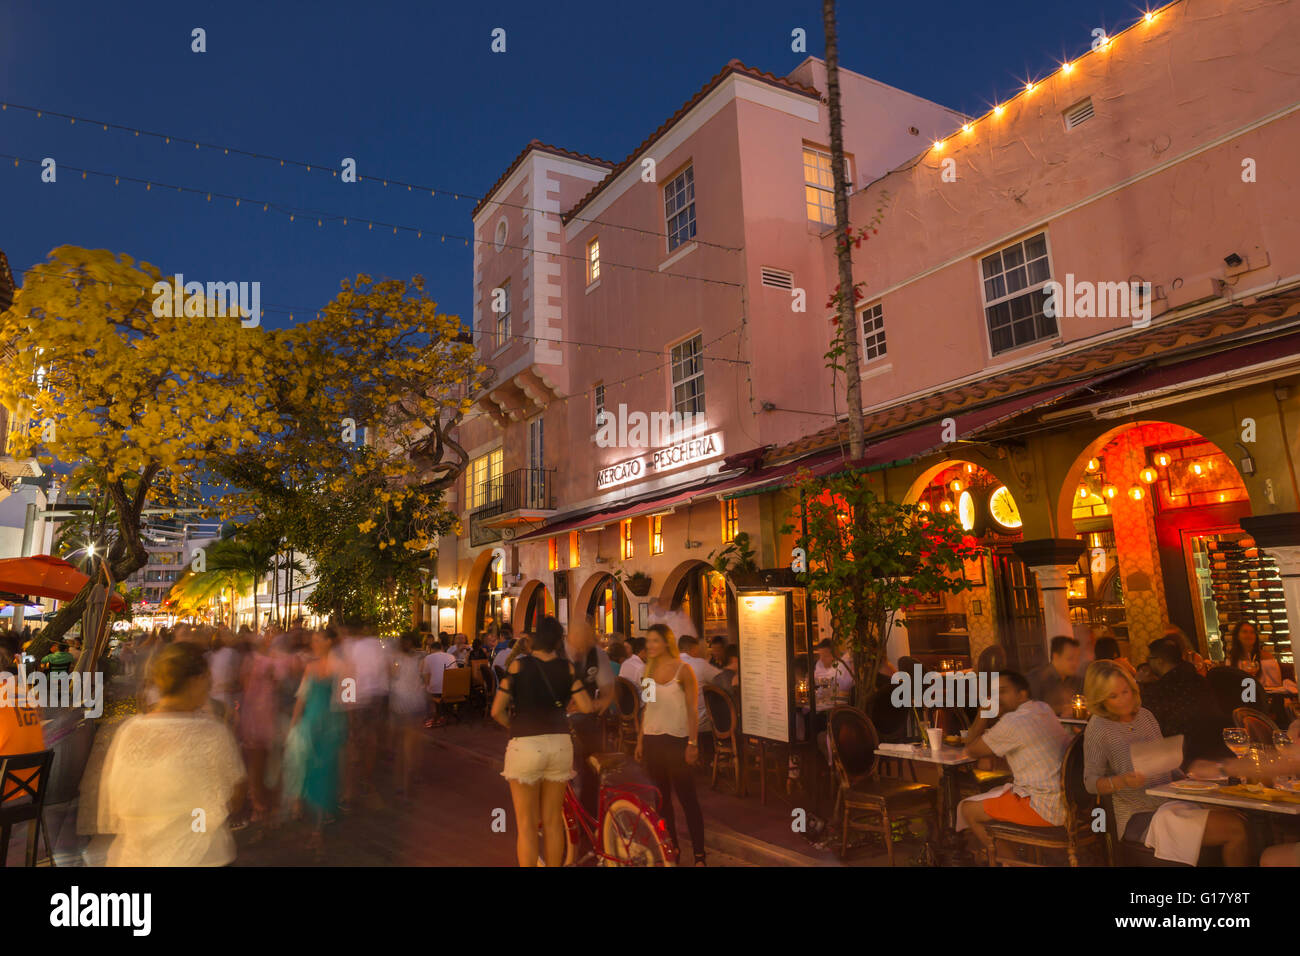 Espanola Way Miami Beach Restaurants